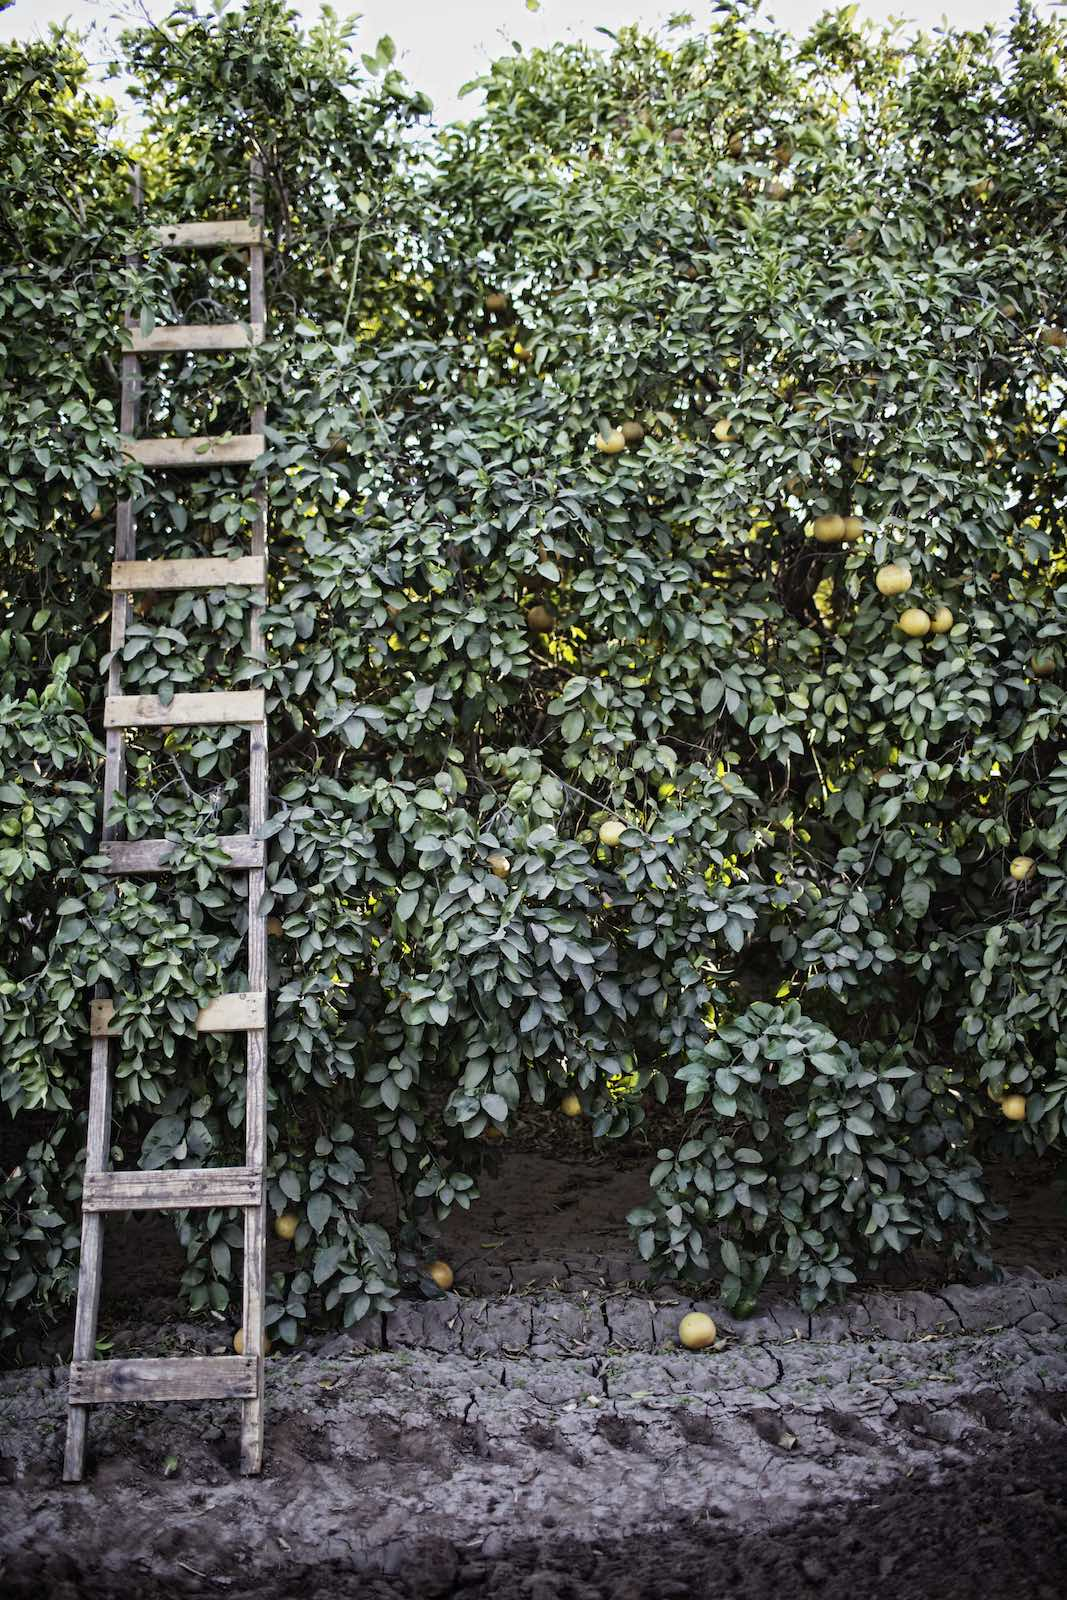 Jody Horton Photography - Wooden ladder leaning against a dense grove of grapefruit trees.